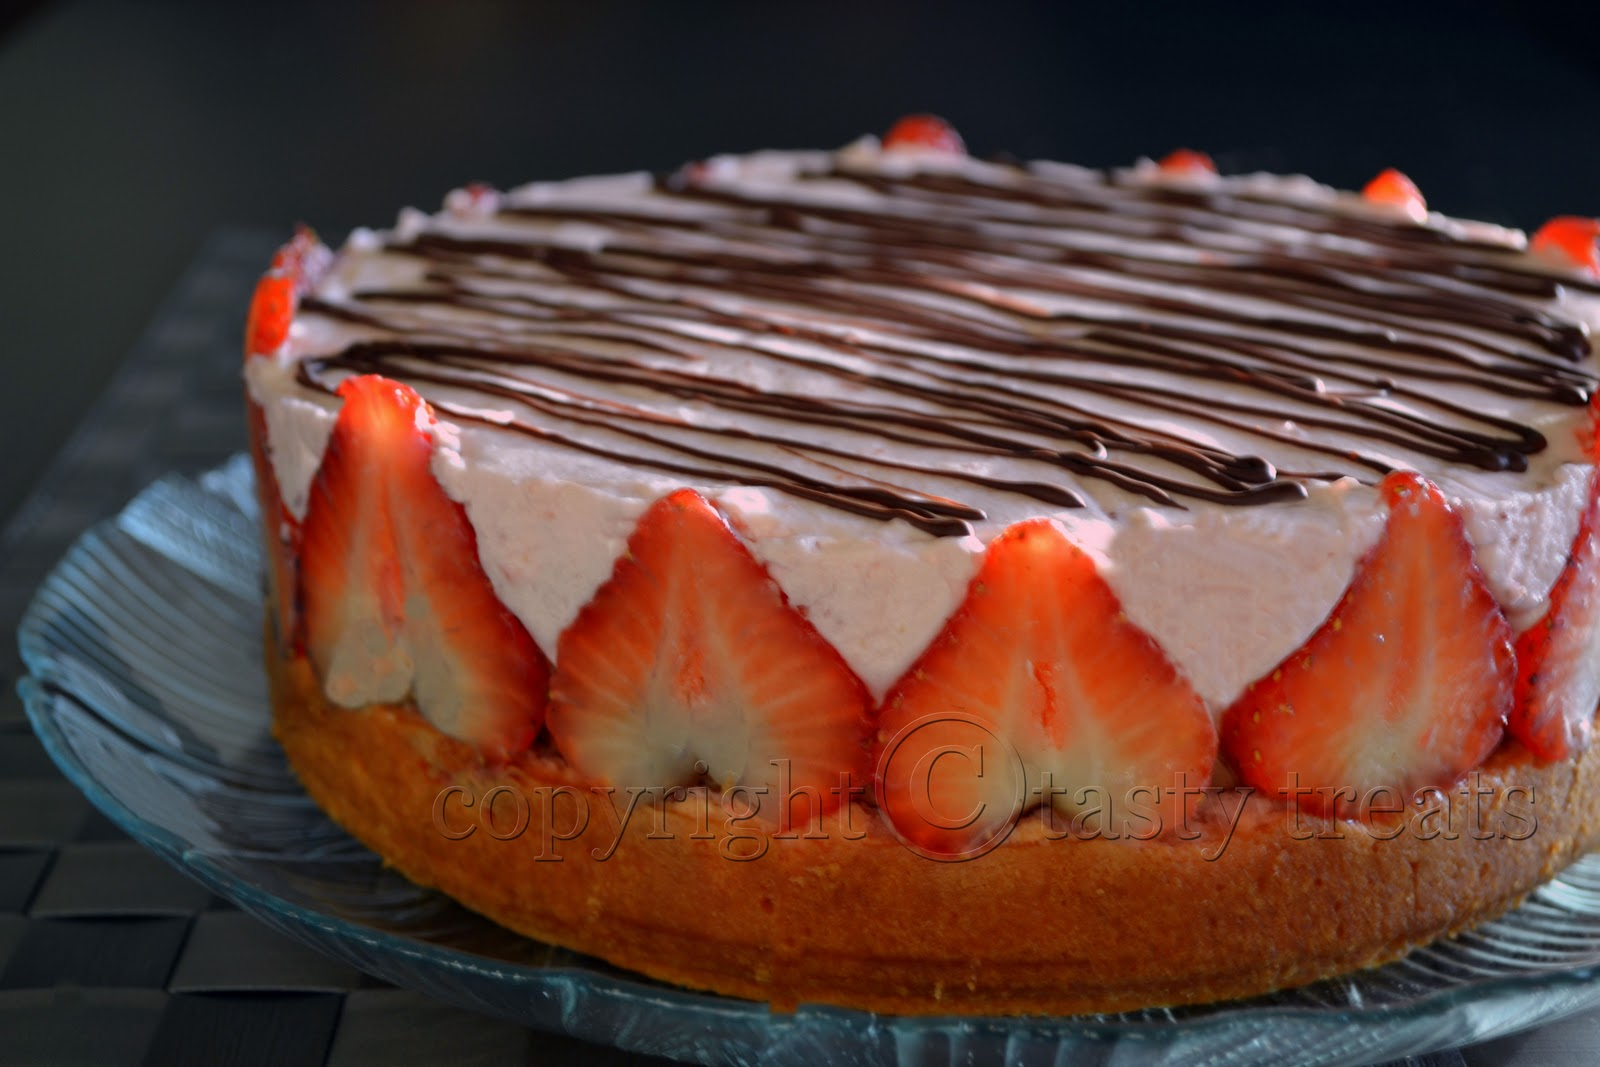 Tasty Treats: Strawberry Chocolate Mousse Cake (Eggless)